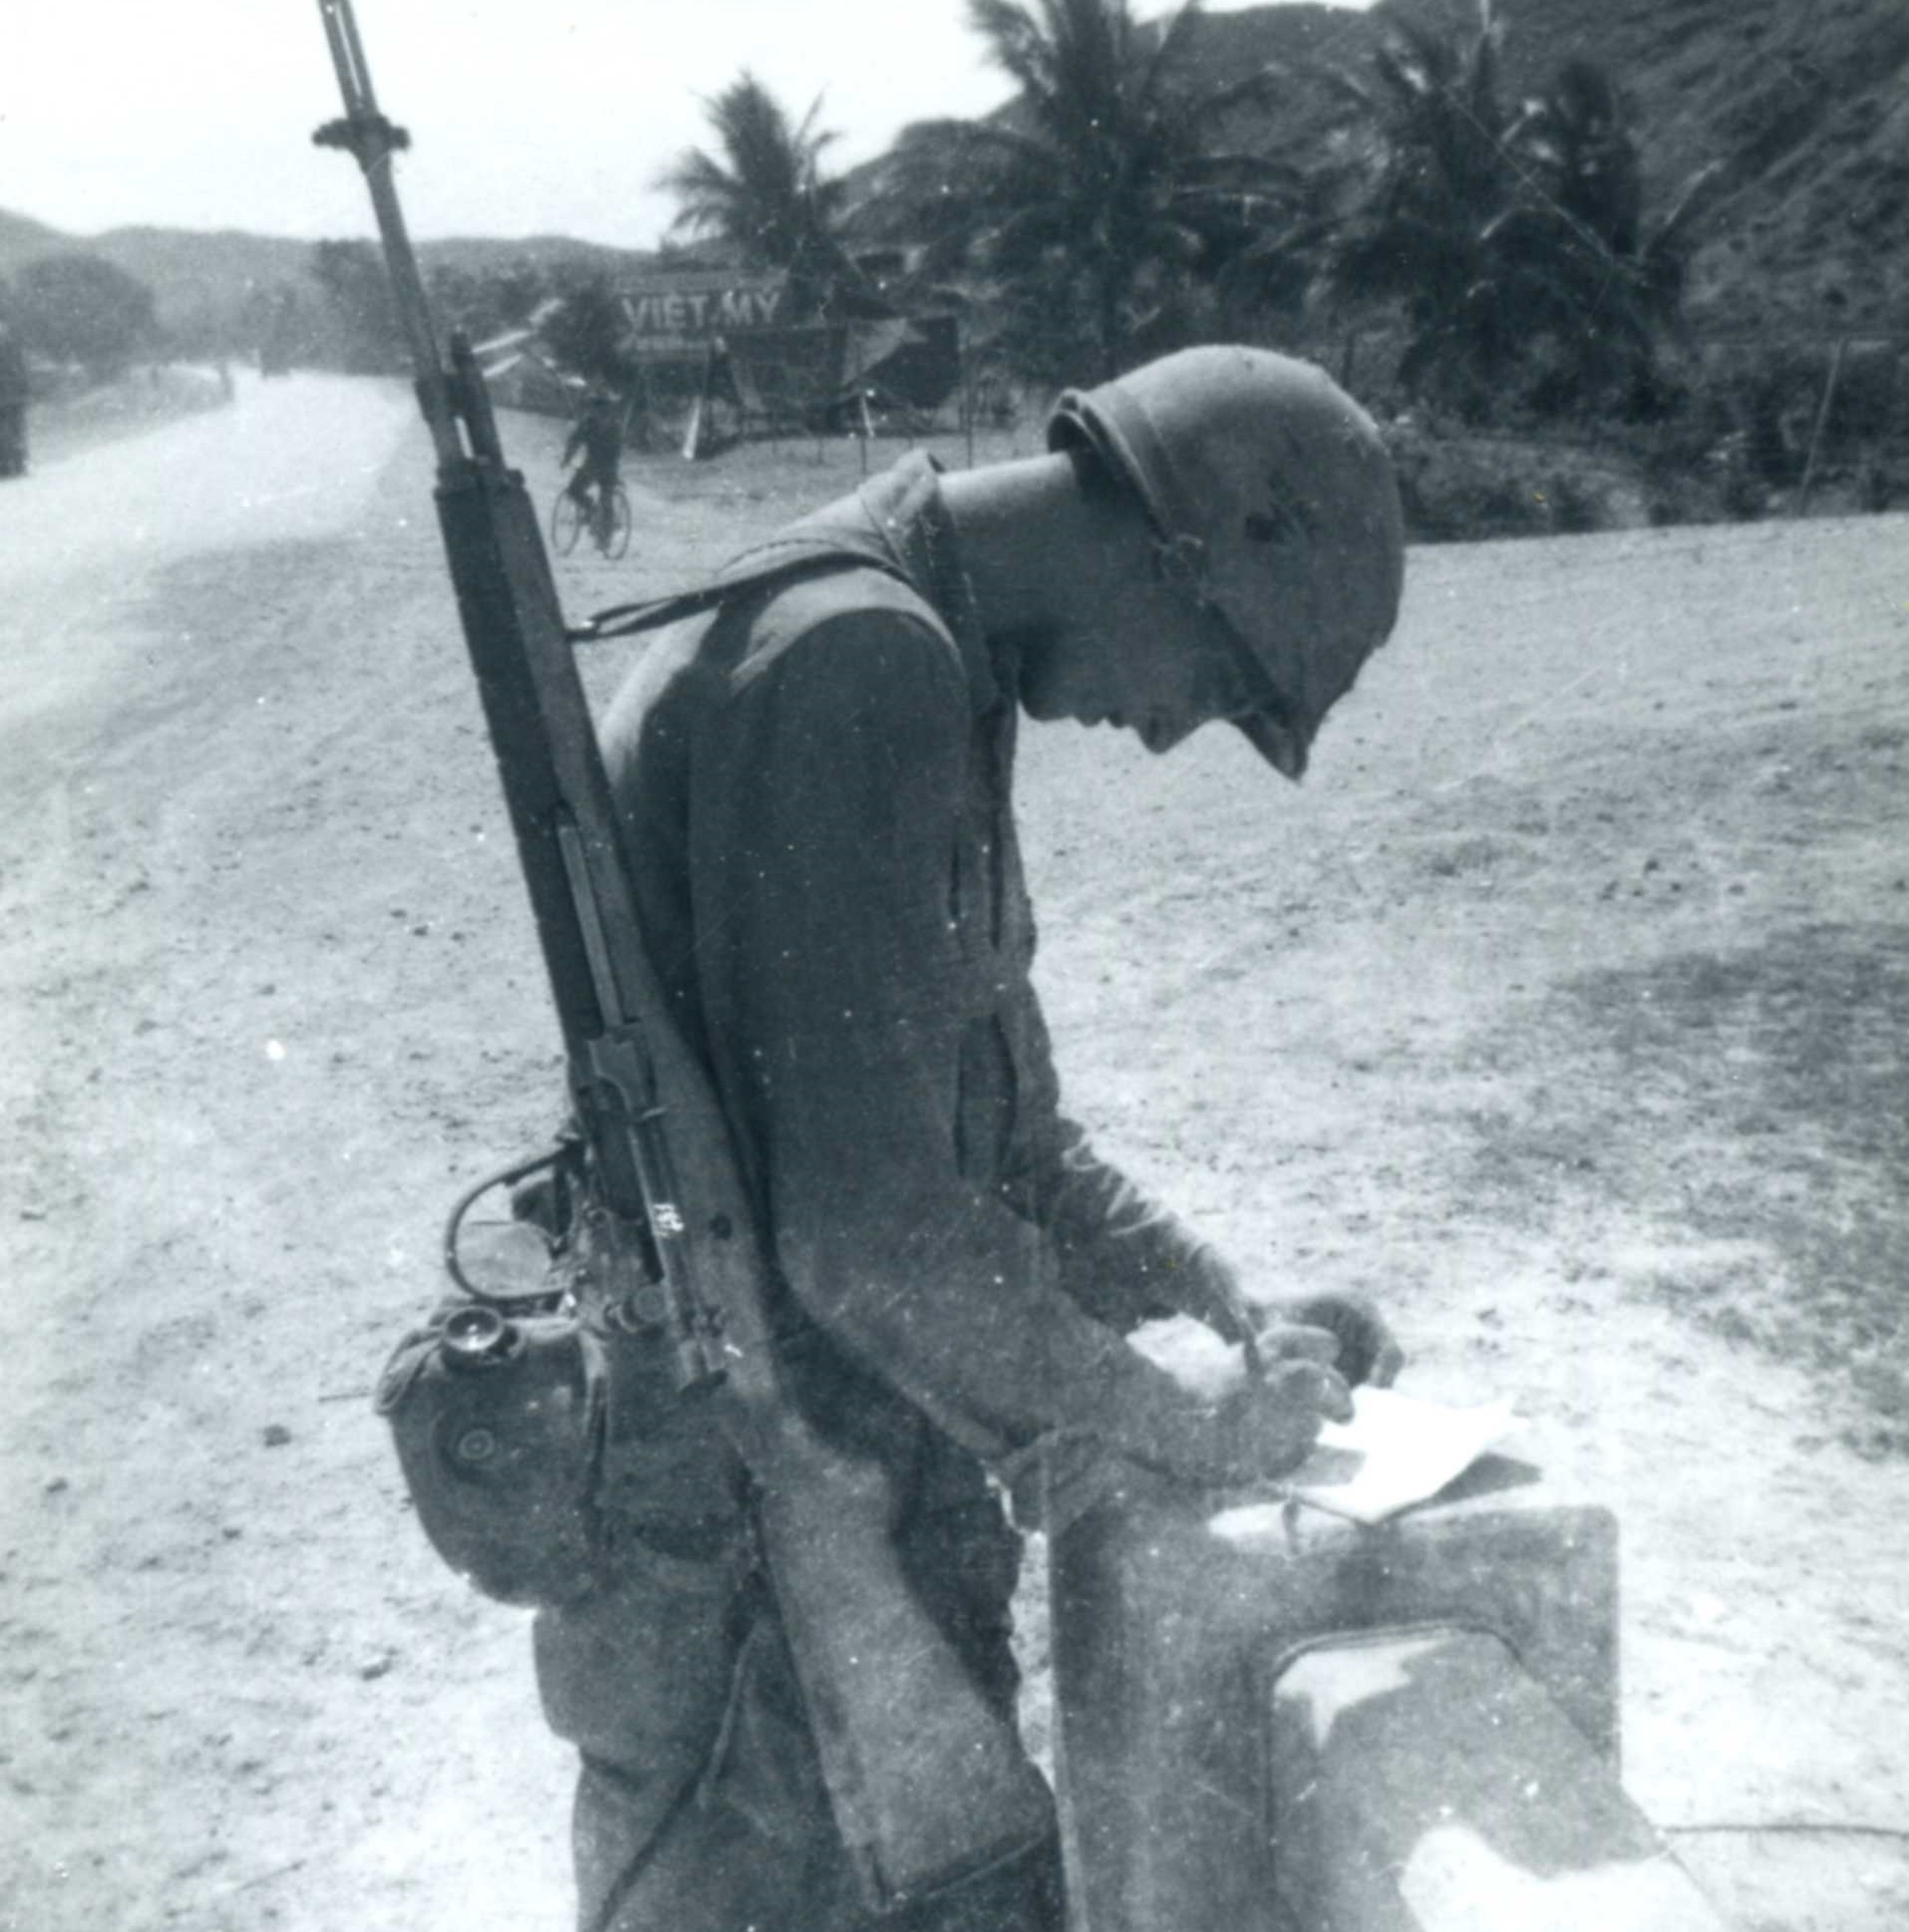 black and white photo of soldier in uniform writing